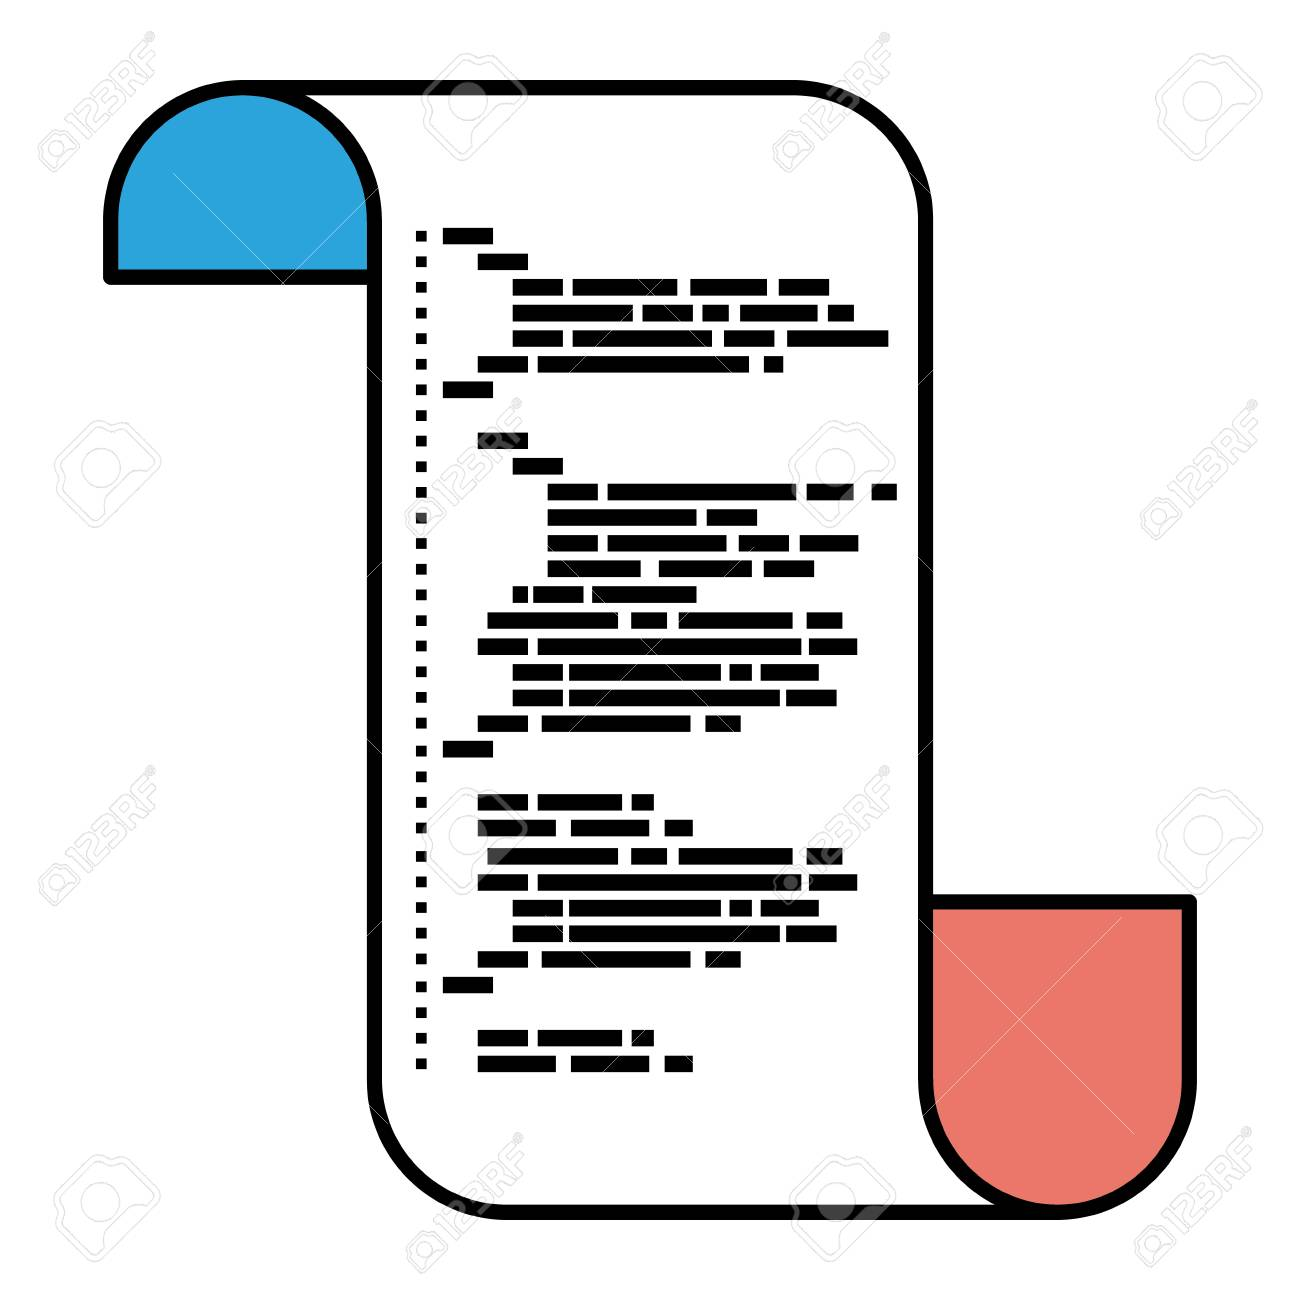 Silhouette Color Sections Of Continuously Sheet With Printed Source Code In Closeup Vector Illustration Stock